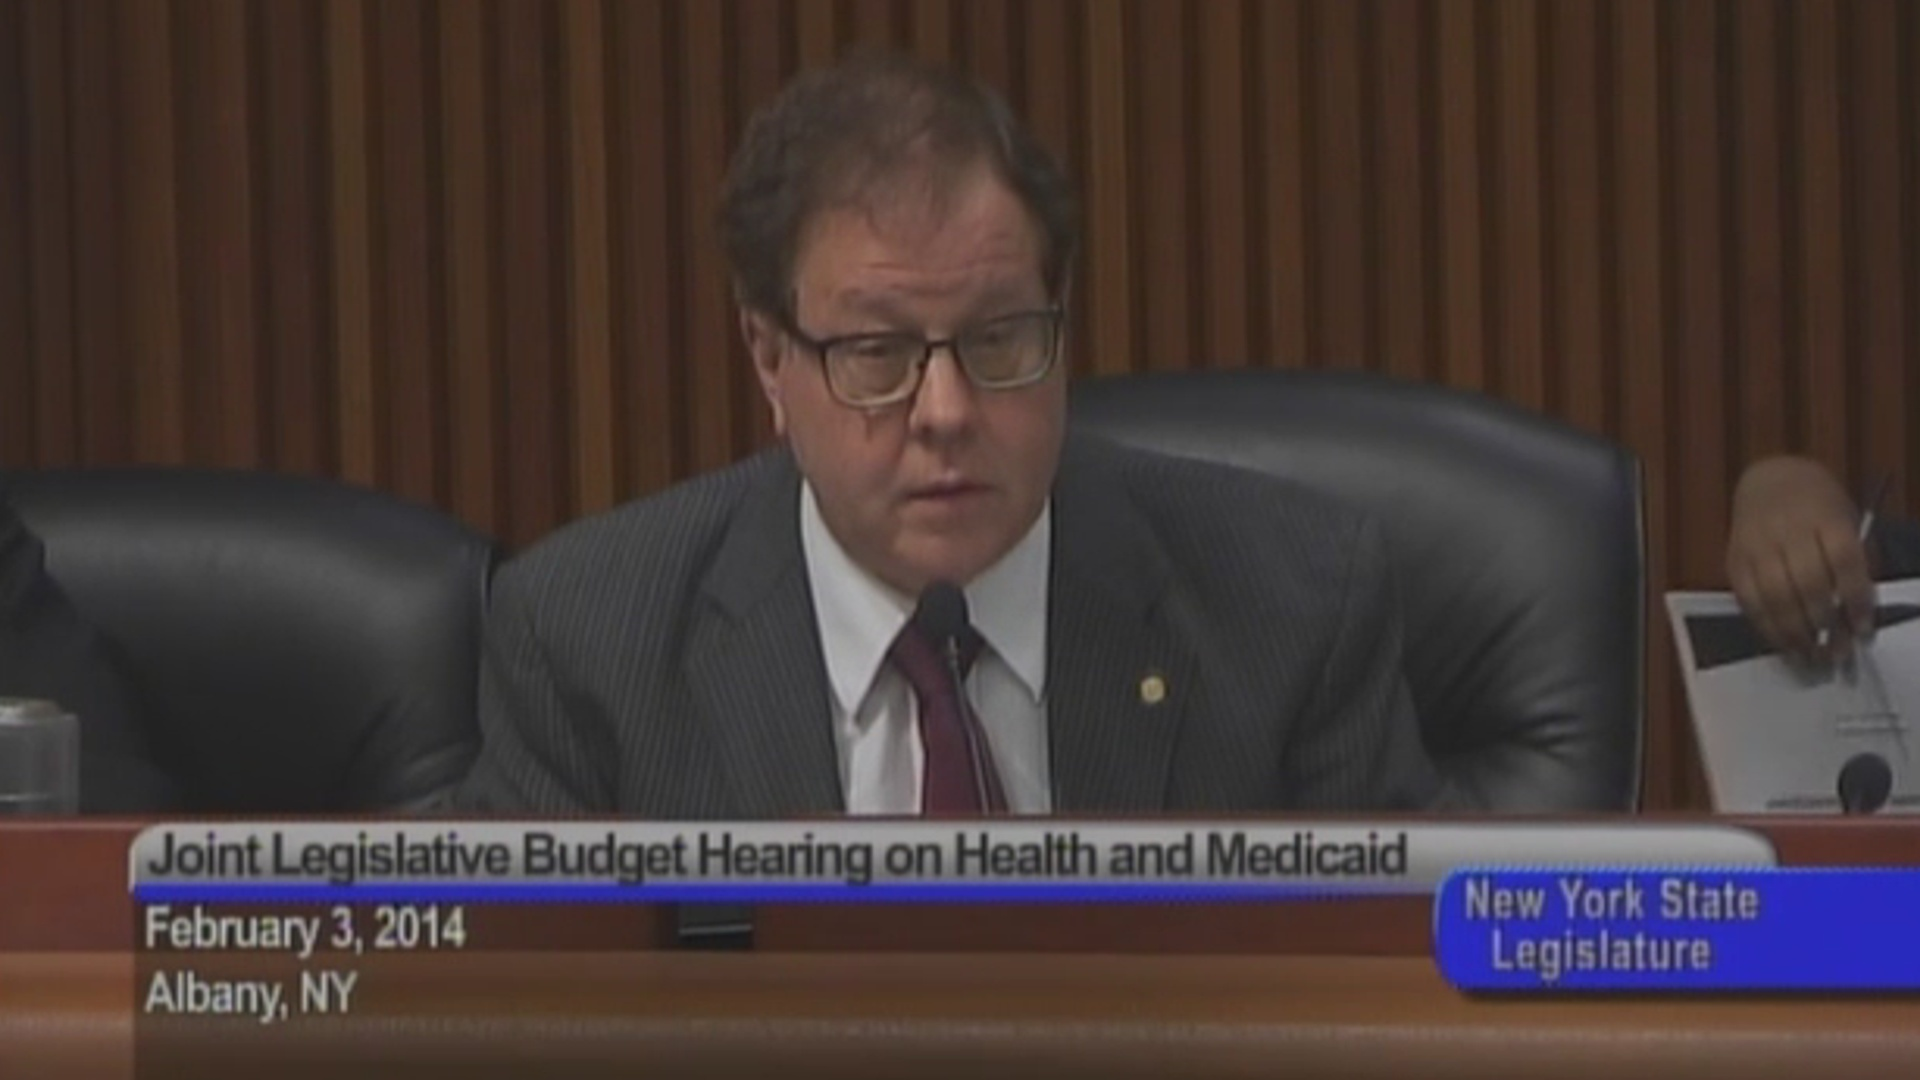 Health and Medicaid Hearing